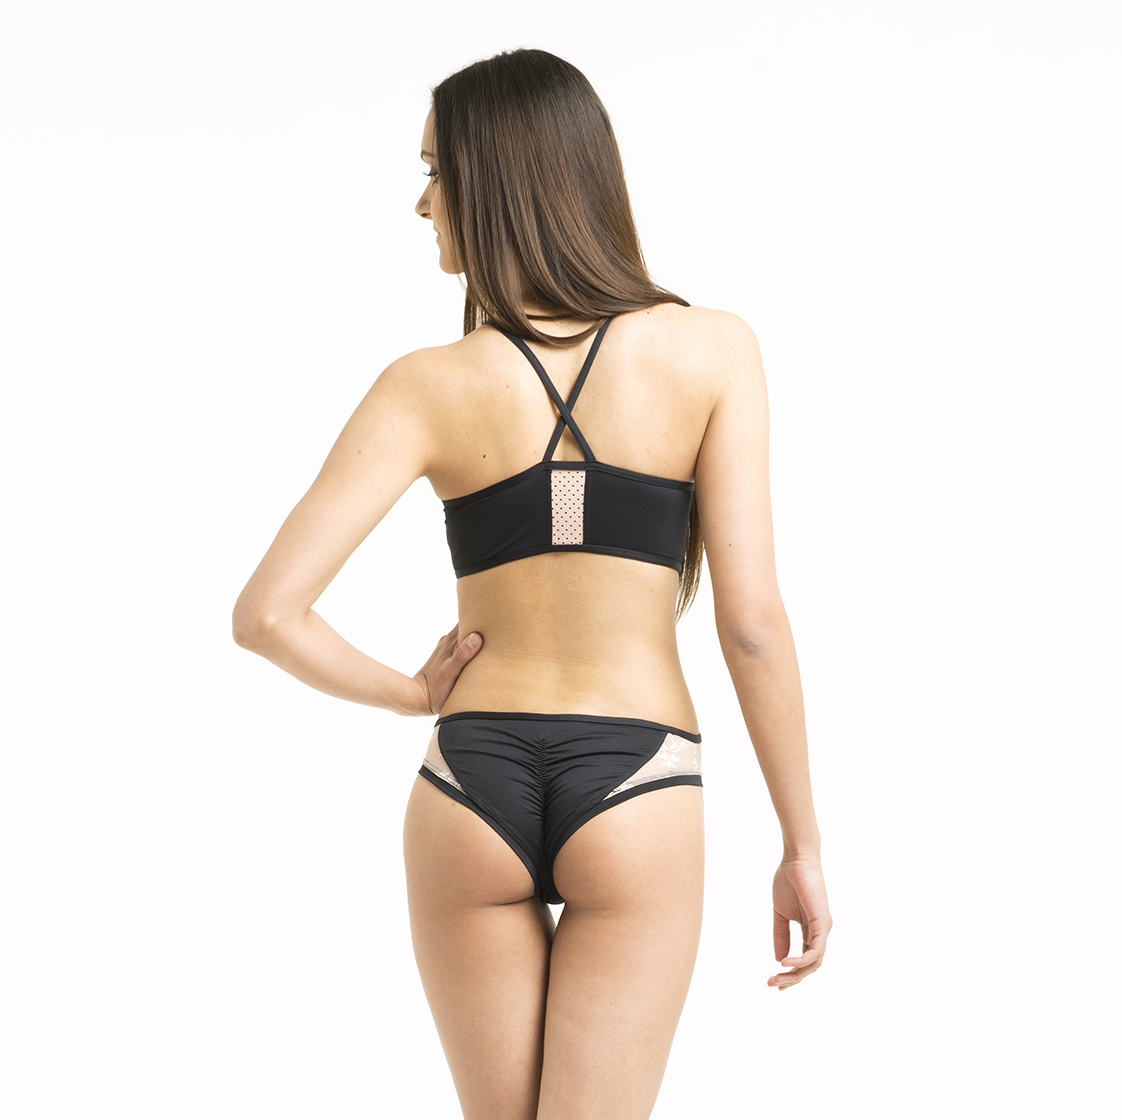 BODYSUIT-poledancerka-back.jpg